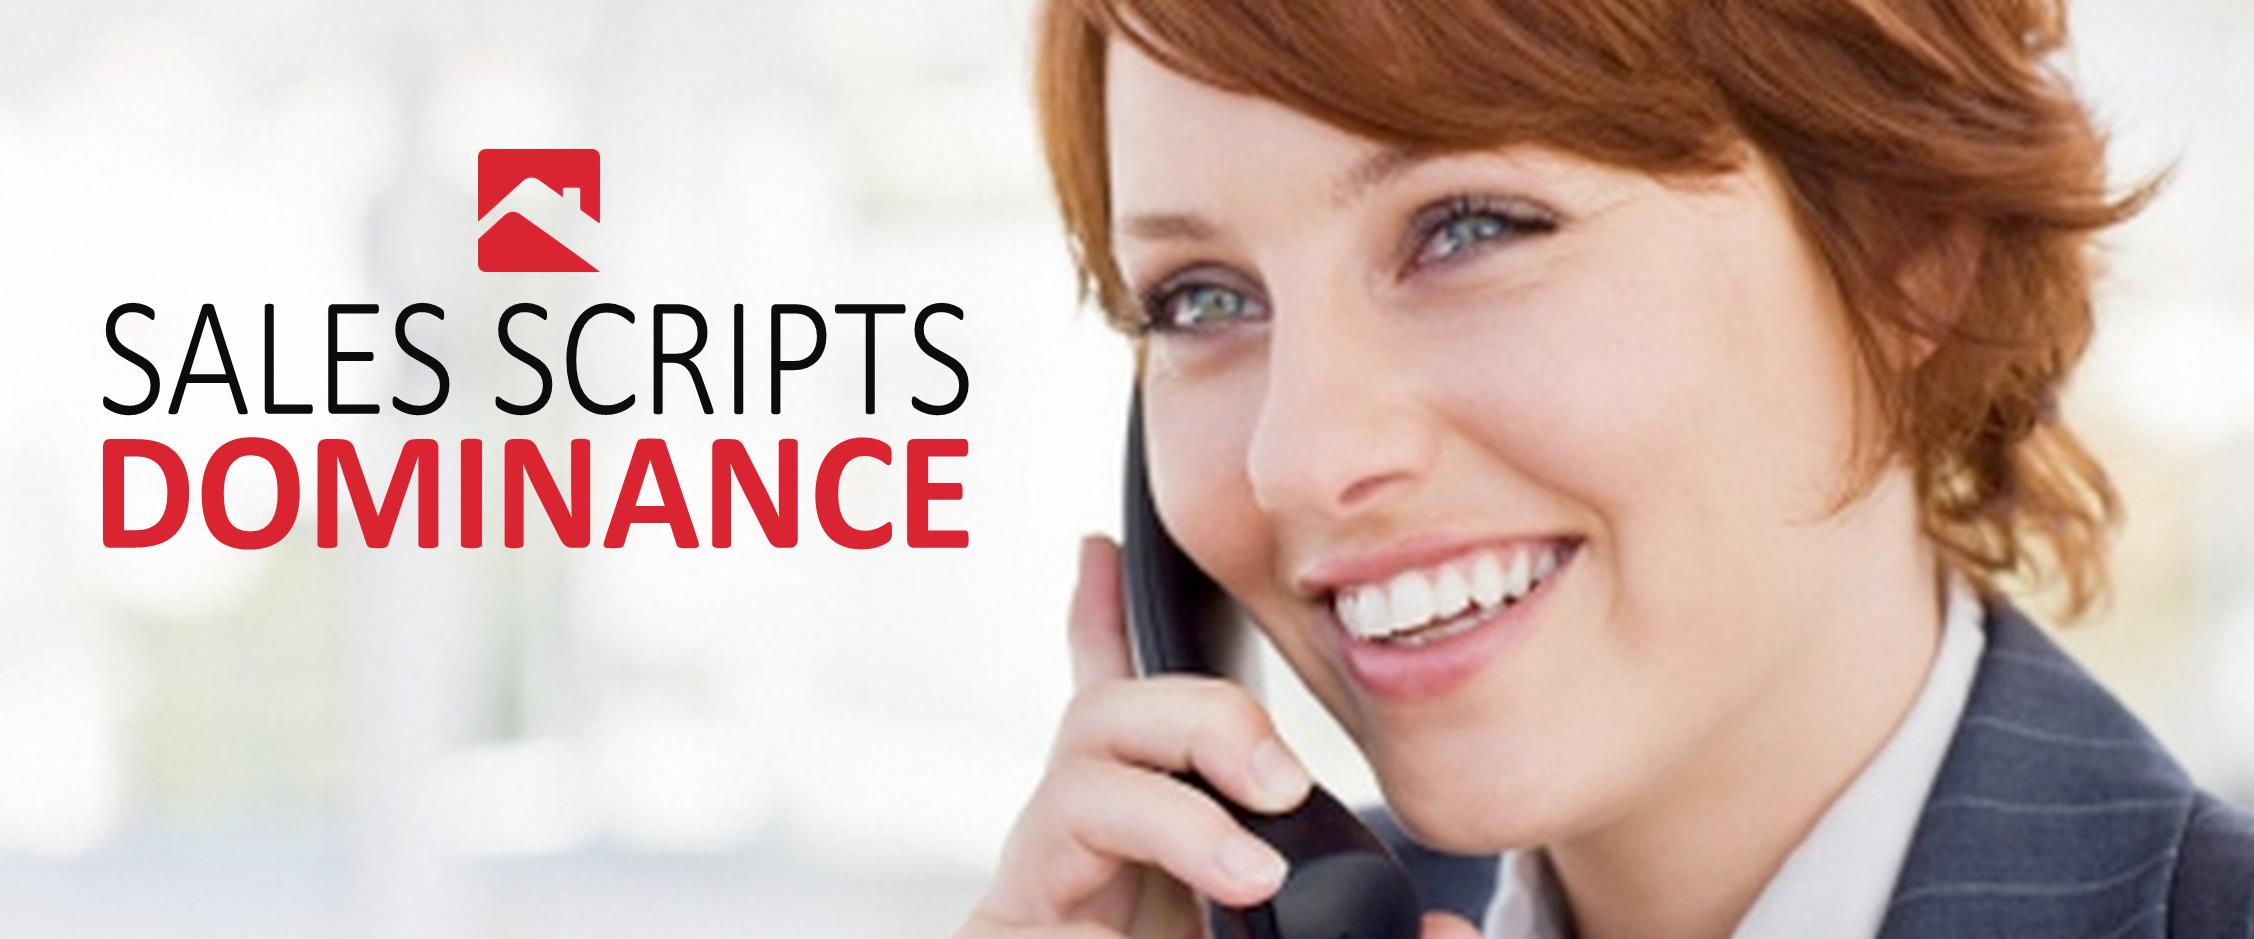 Sales Script Dominance  Our results driven real estate sales scripts will help hone in your communication skills when working with buyers,sellers, and potential leads. Feel free to join our weekly Sales Scripts Dominance coffee work shop.  We'll use our industry experience to role play with you on a regular basis, until these communication skills are a natural part of your daily tool set.